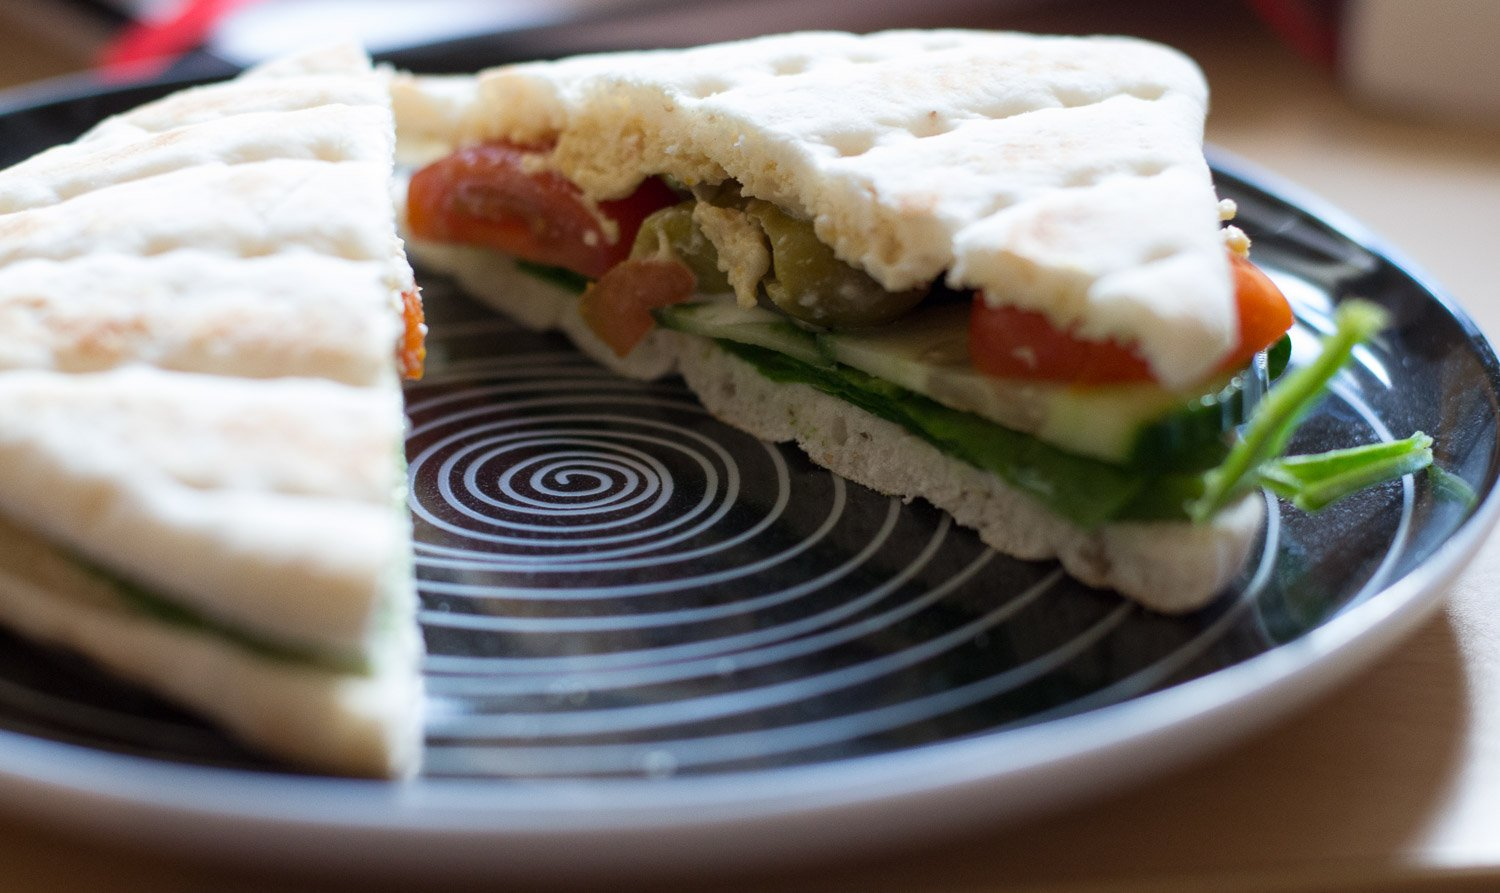 Warburtons Thin salad sandwich